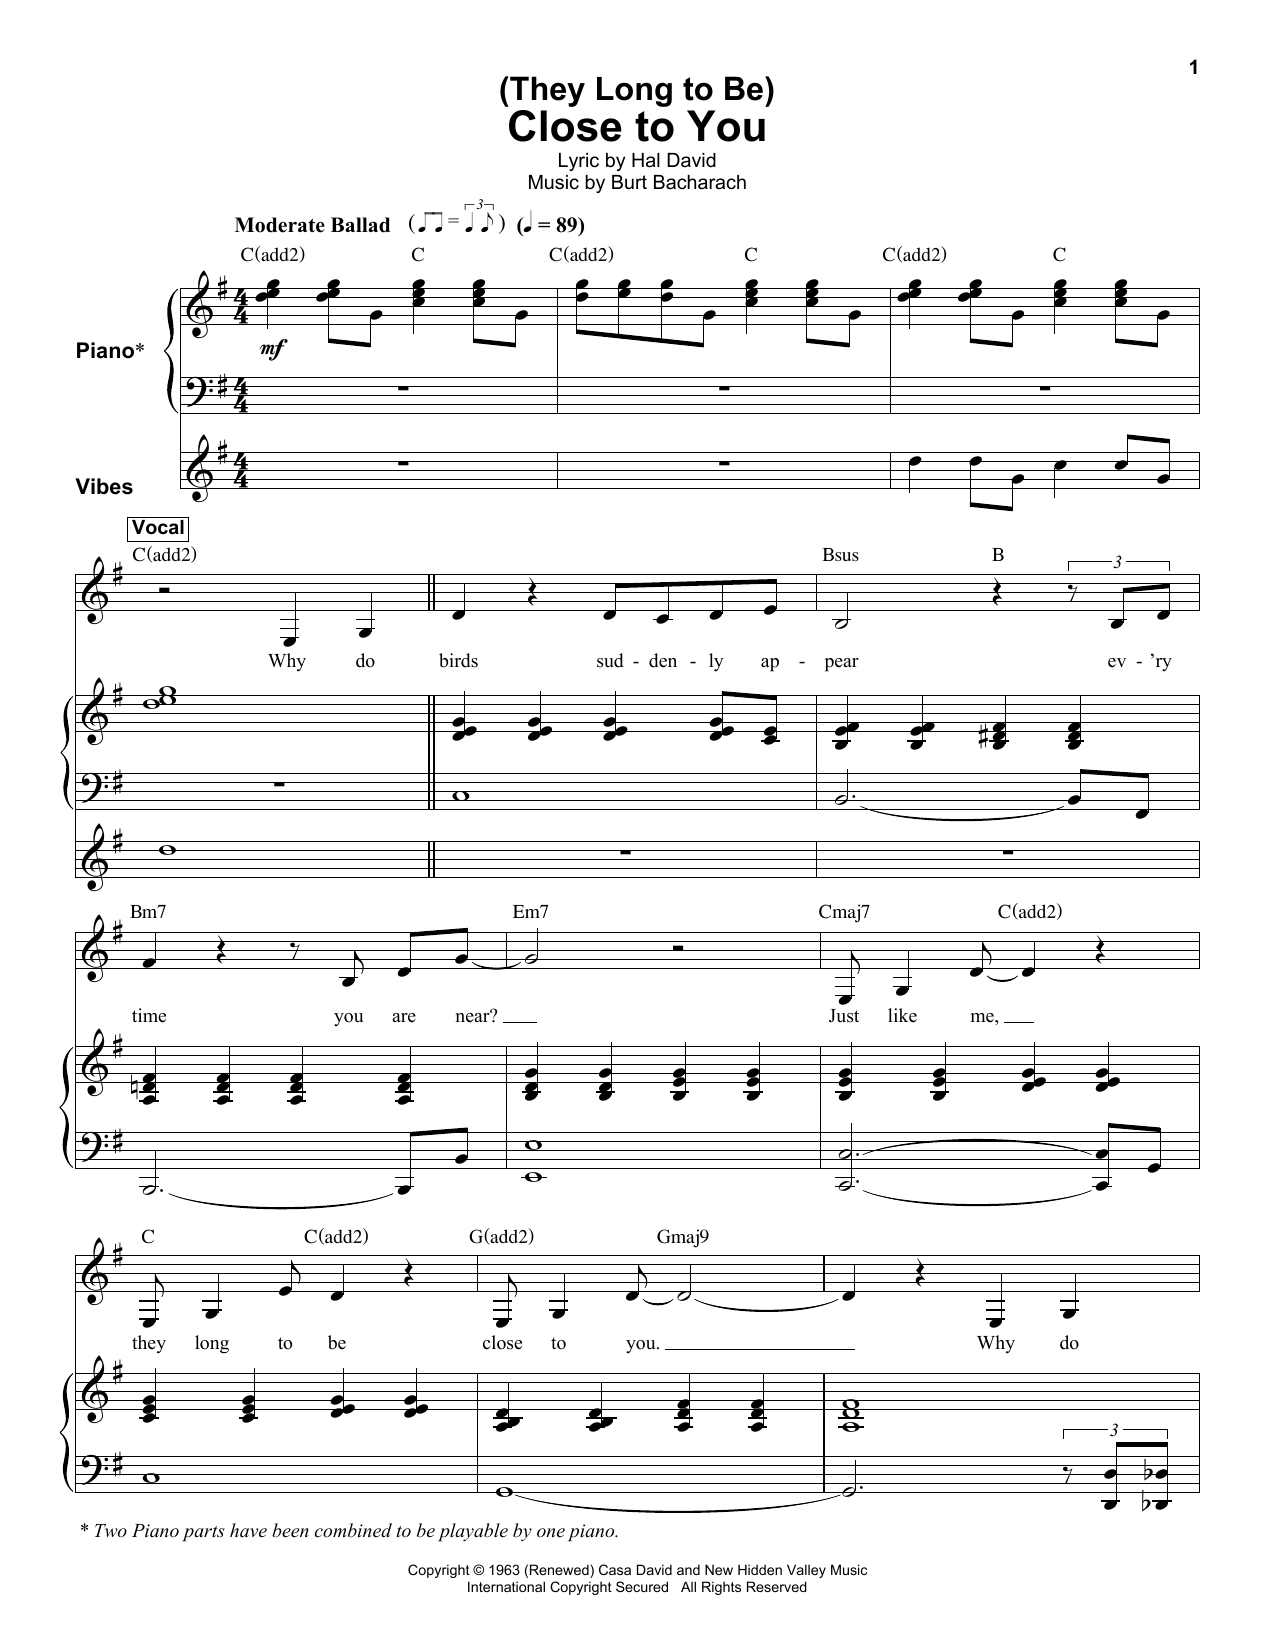 They Long To Be Close To You Sheet Music To Download